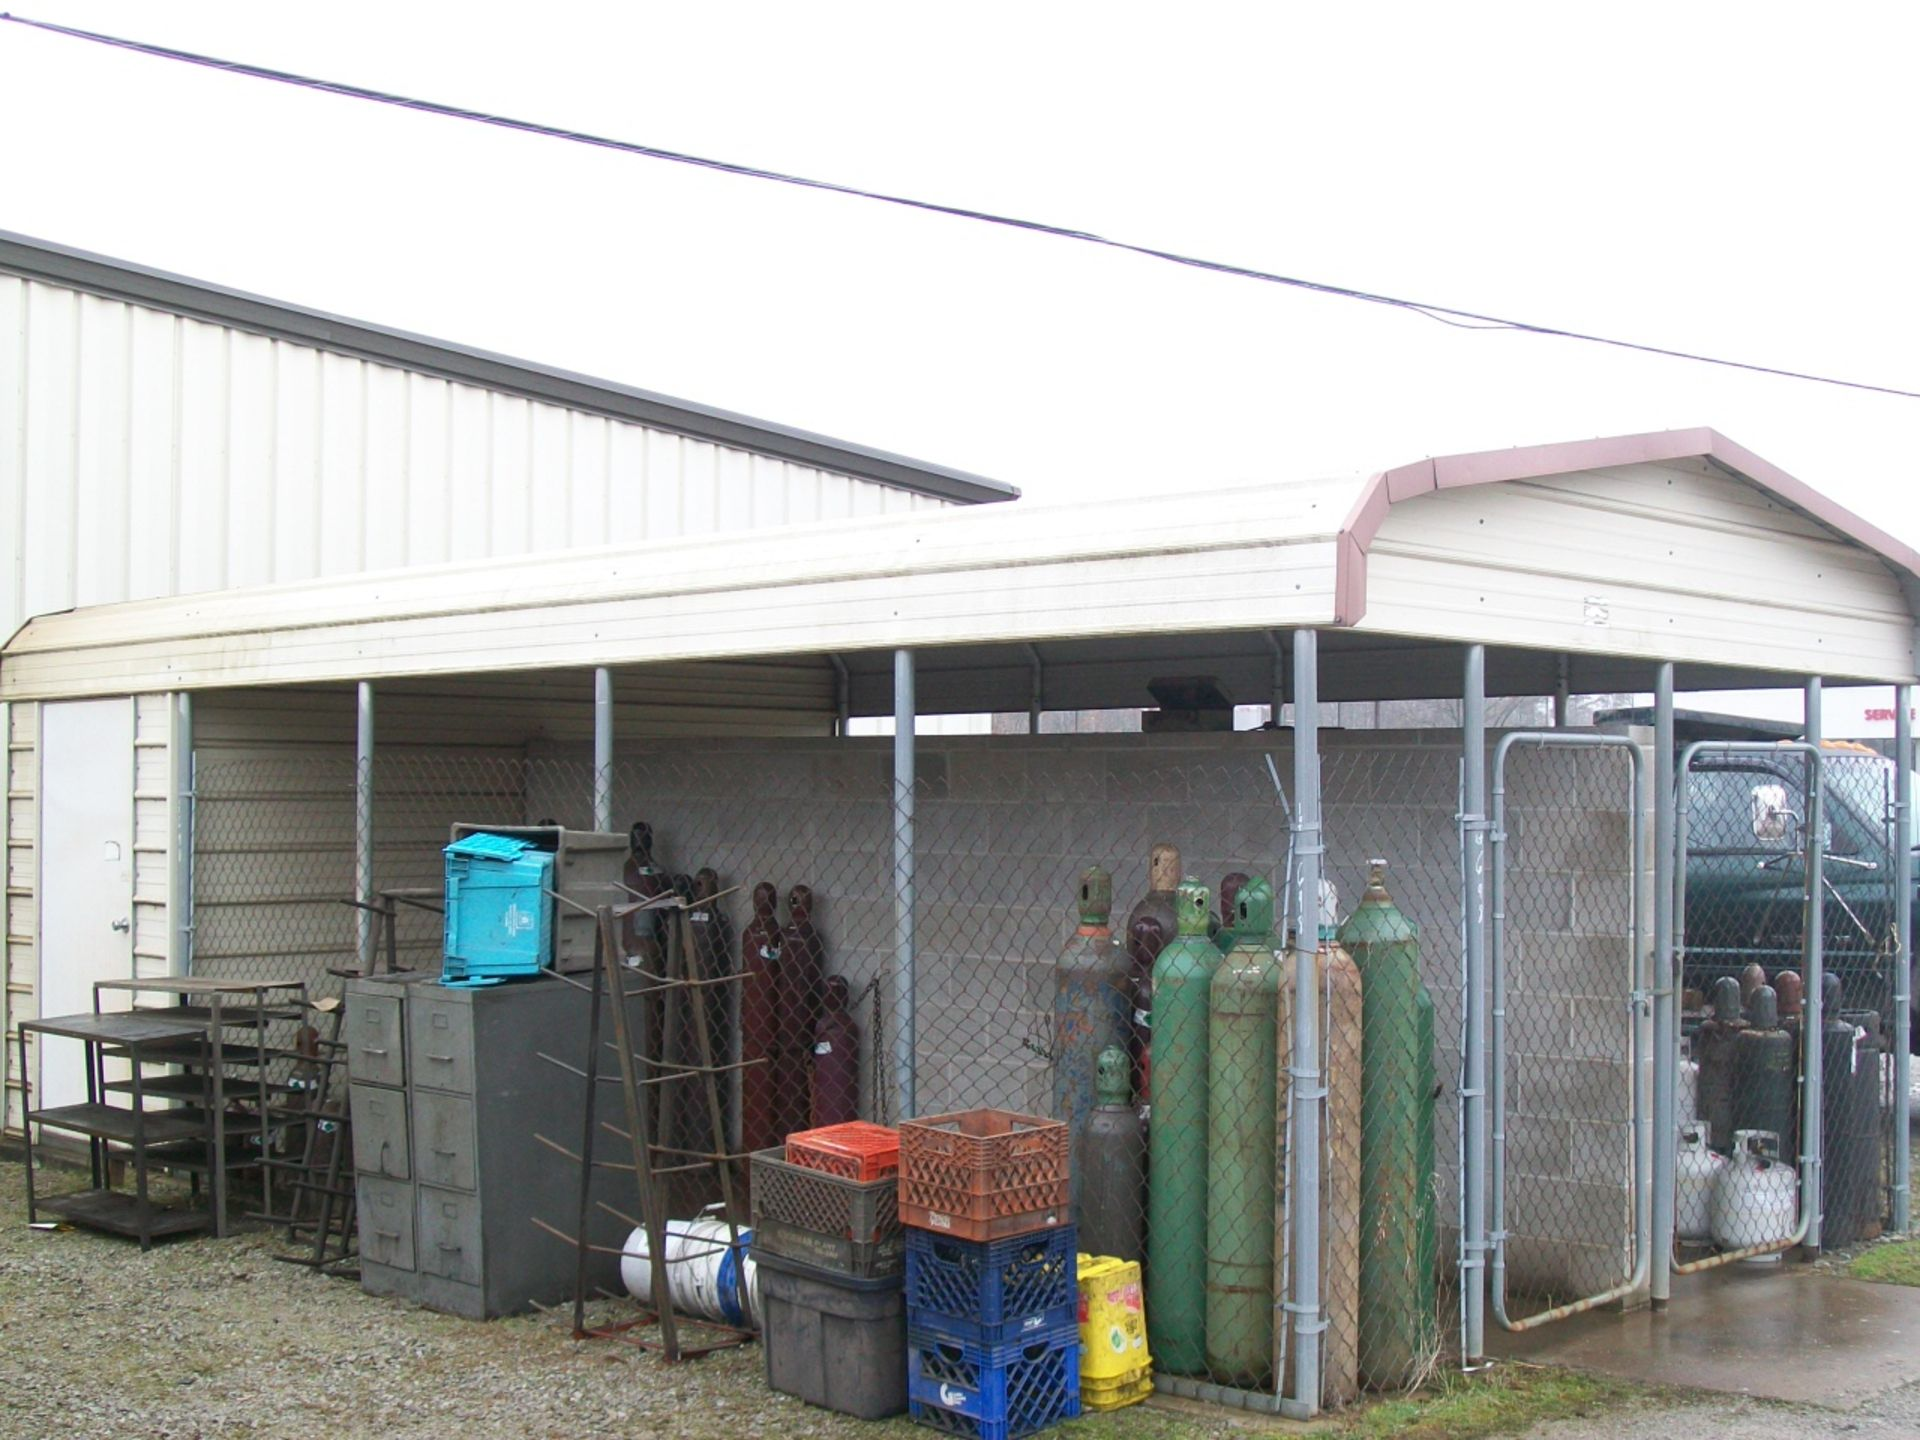 Lot 698 - PORTABLE SHED, APPROX 15'X30'